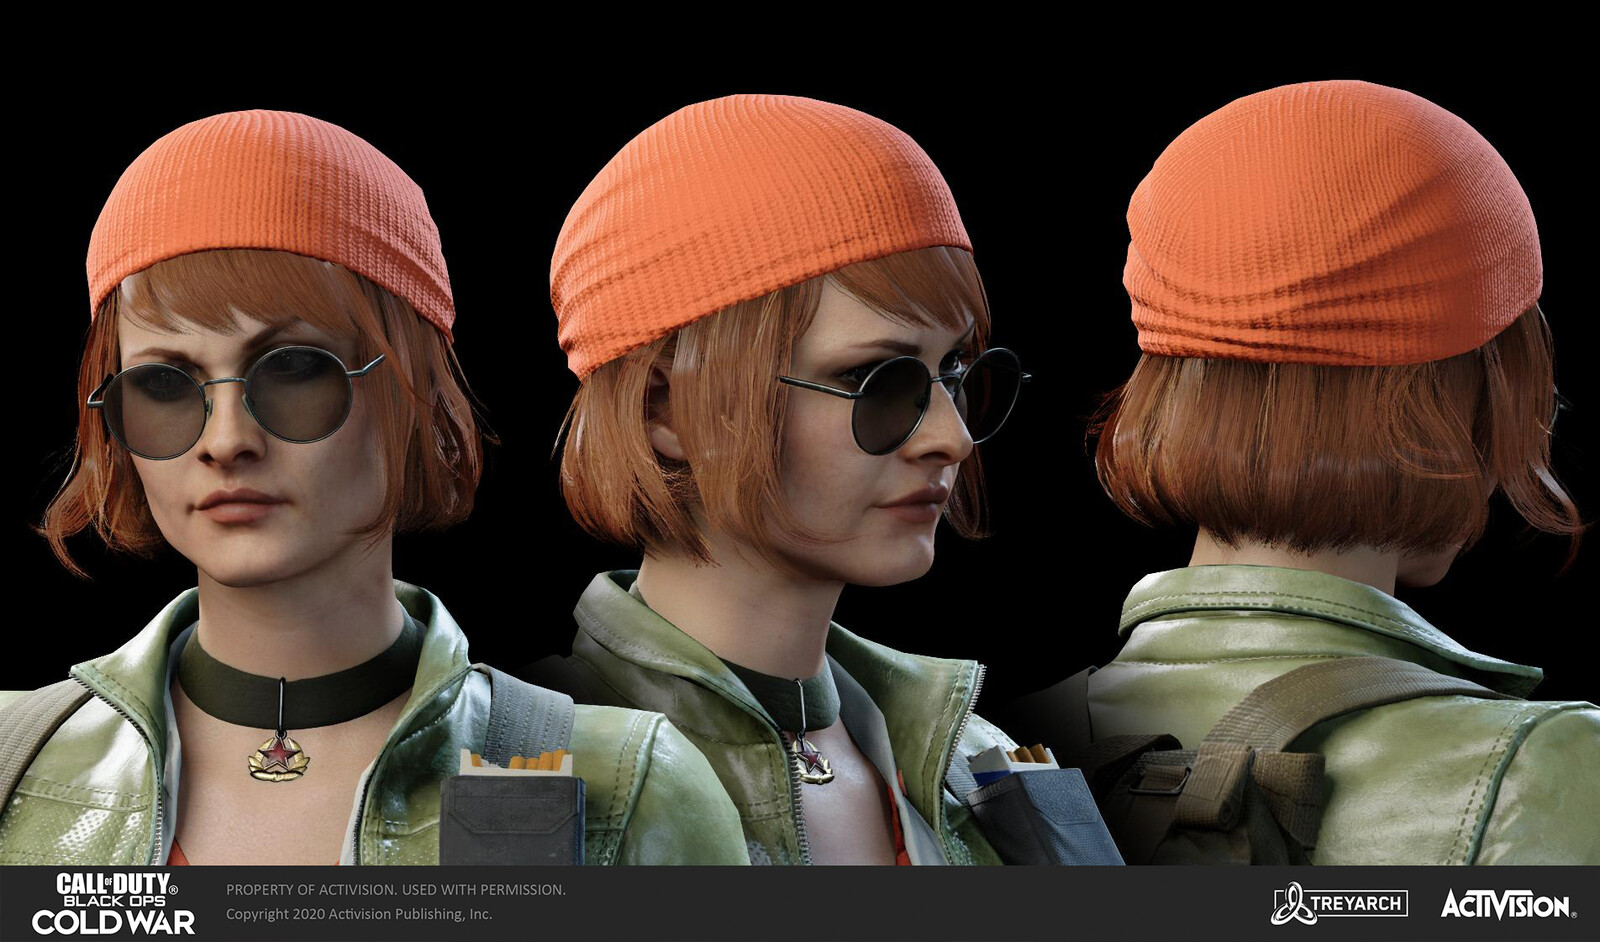 Outfit (including hat/glasses) seen here was designed/modeled by El Trofimova